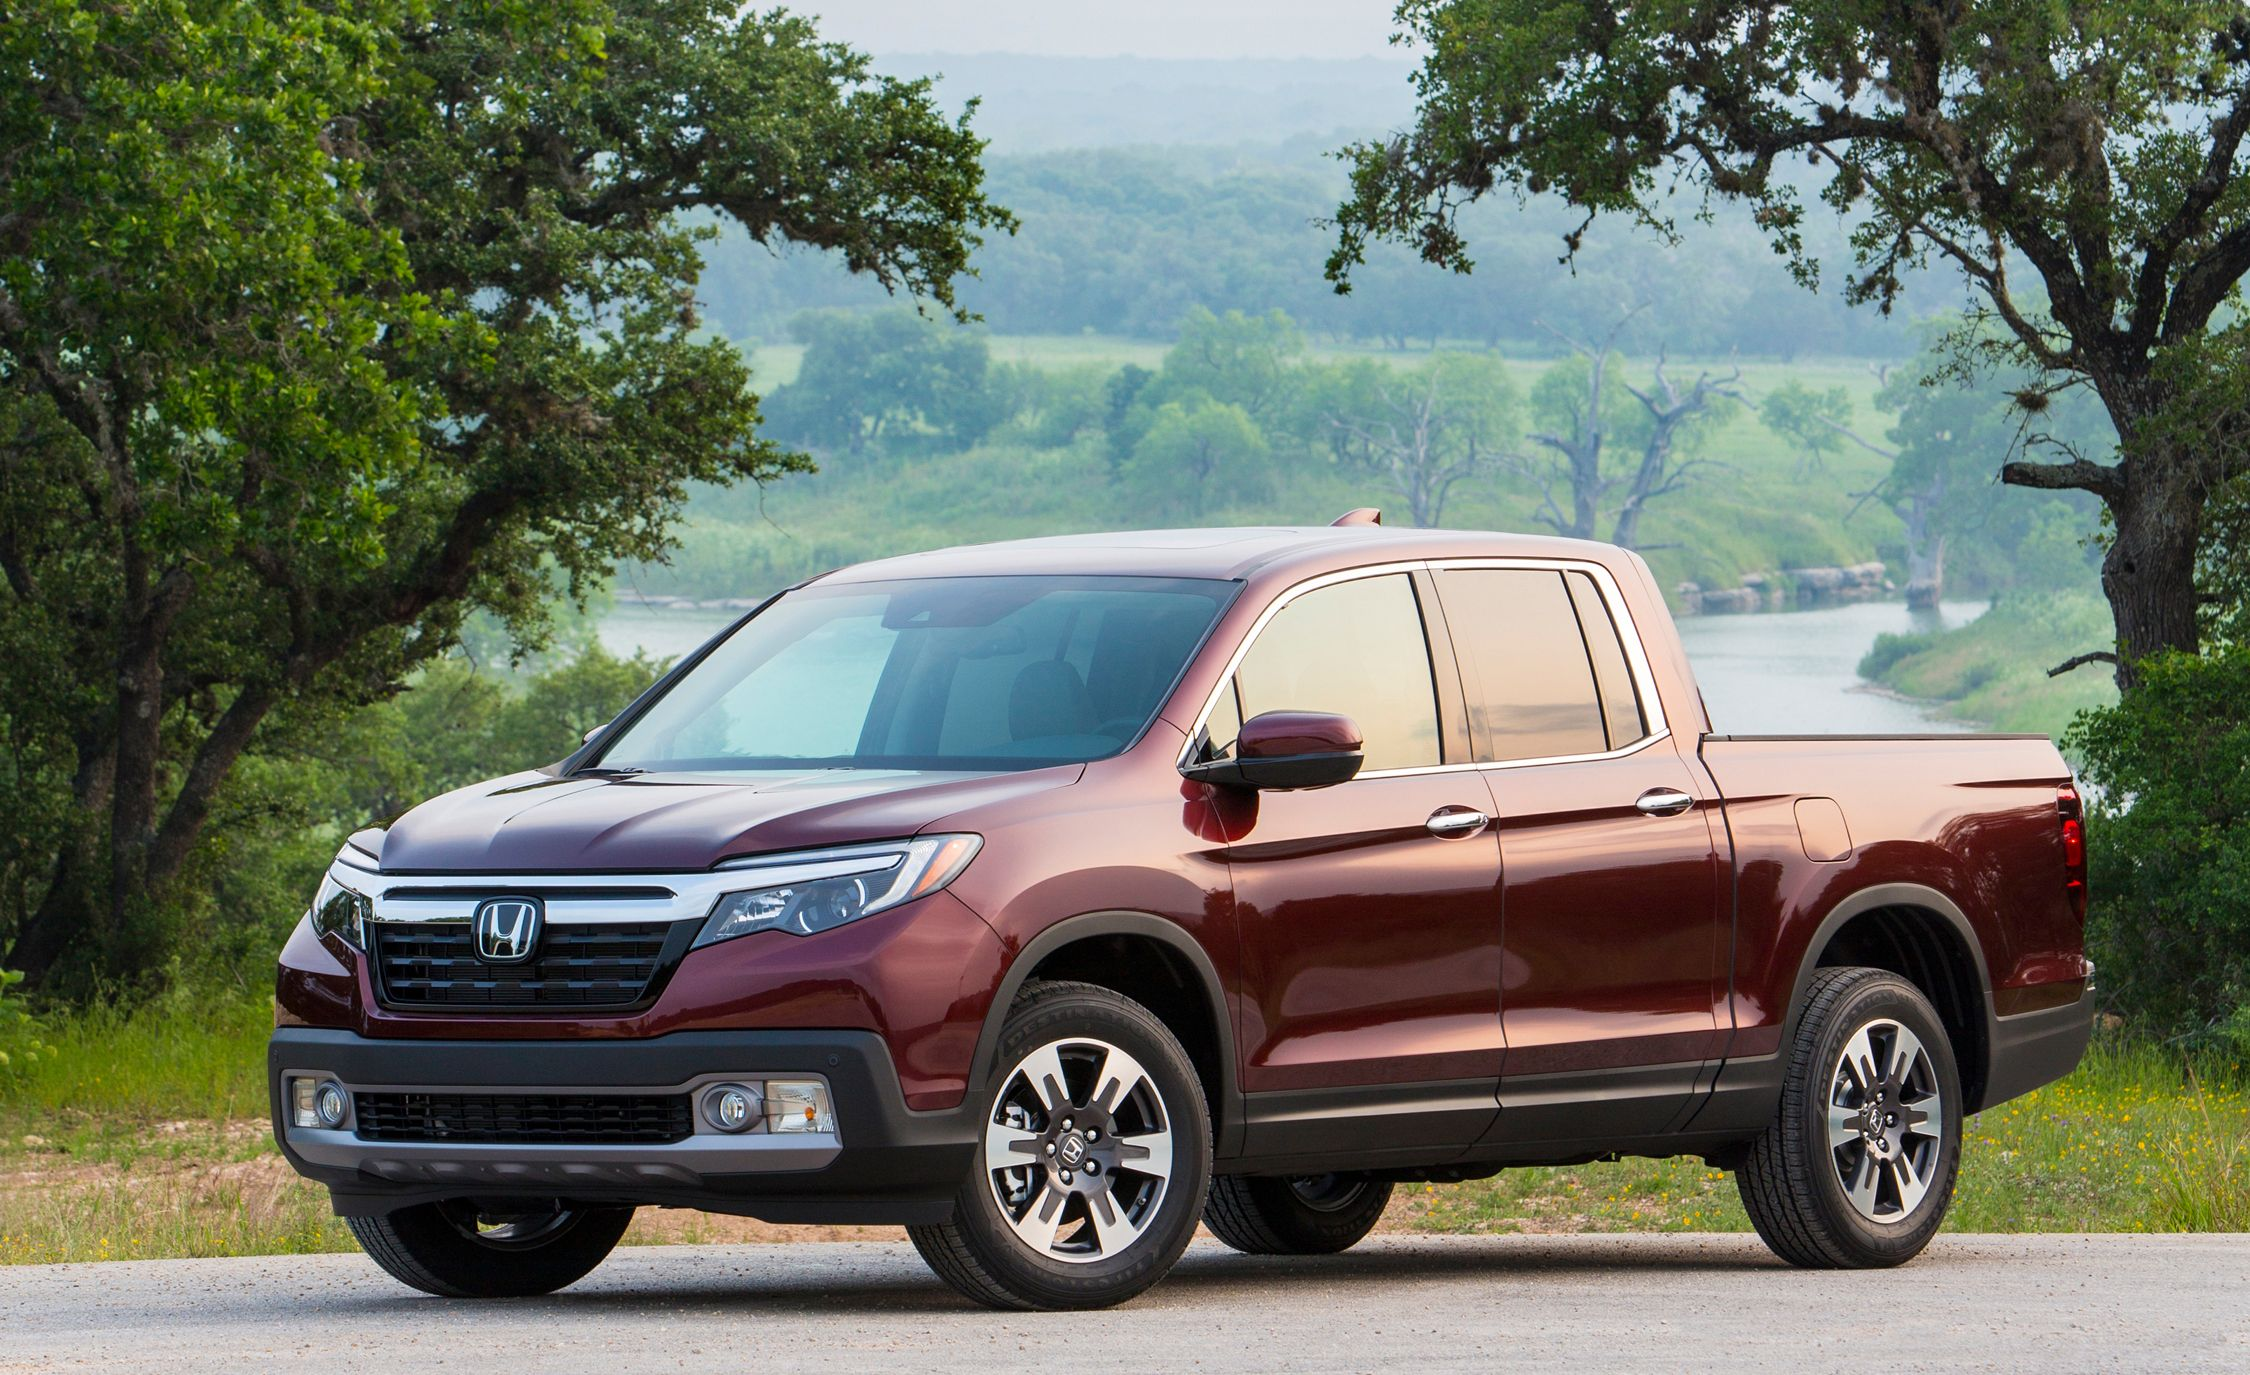 wheels honda interior reviews in edition touches ca review abounds ridgeline black car nice